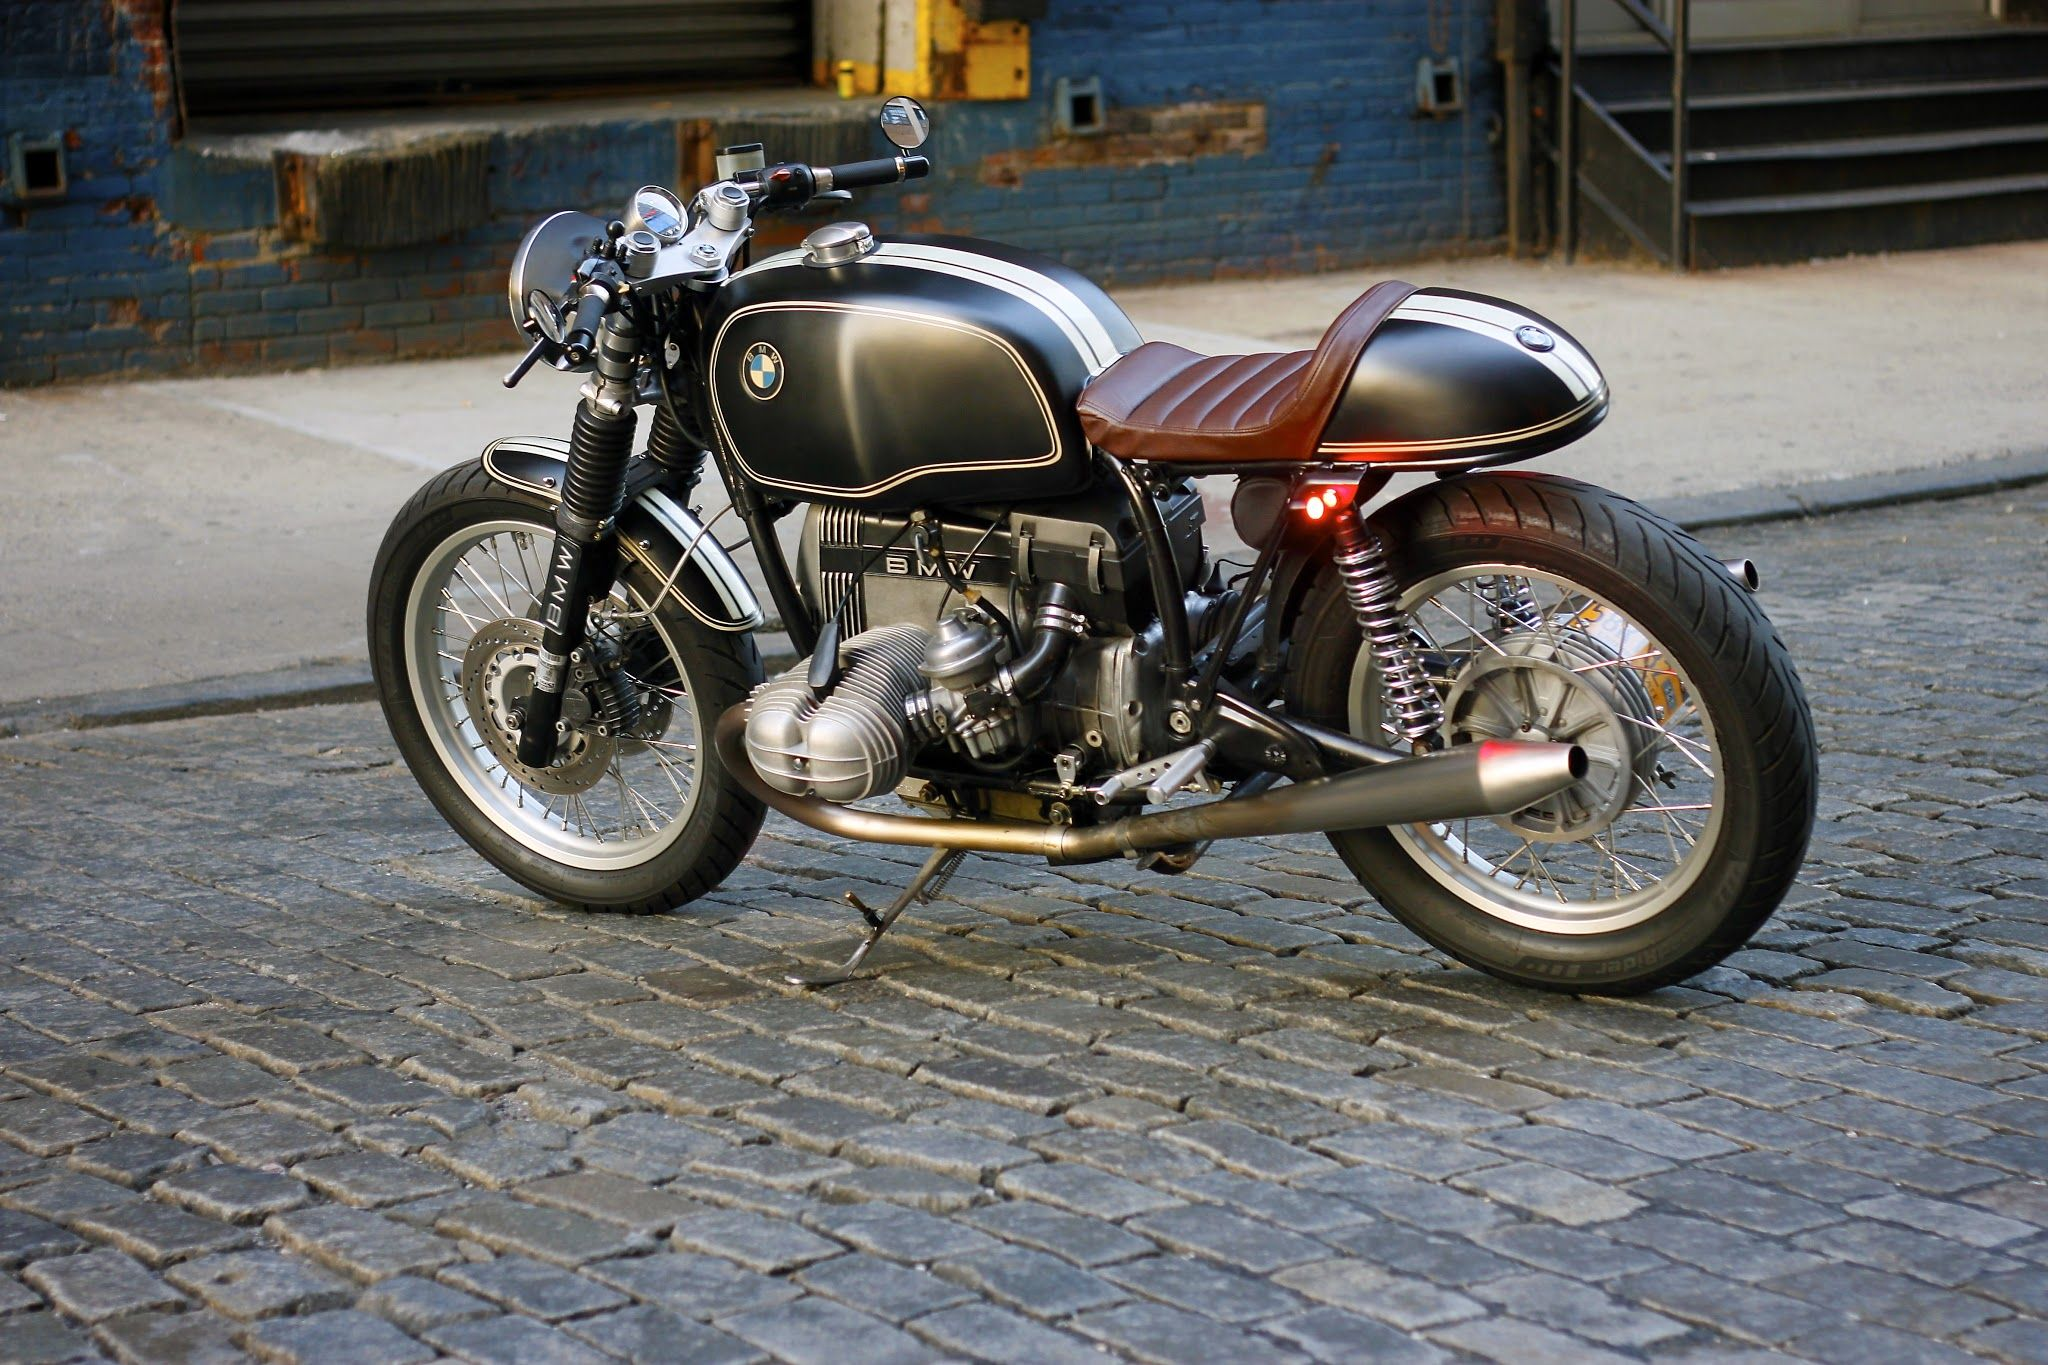 bmw r100 cafe racer conversion | sugakiya motor